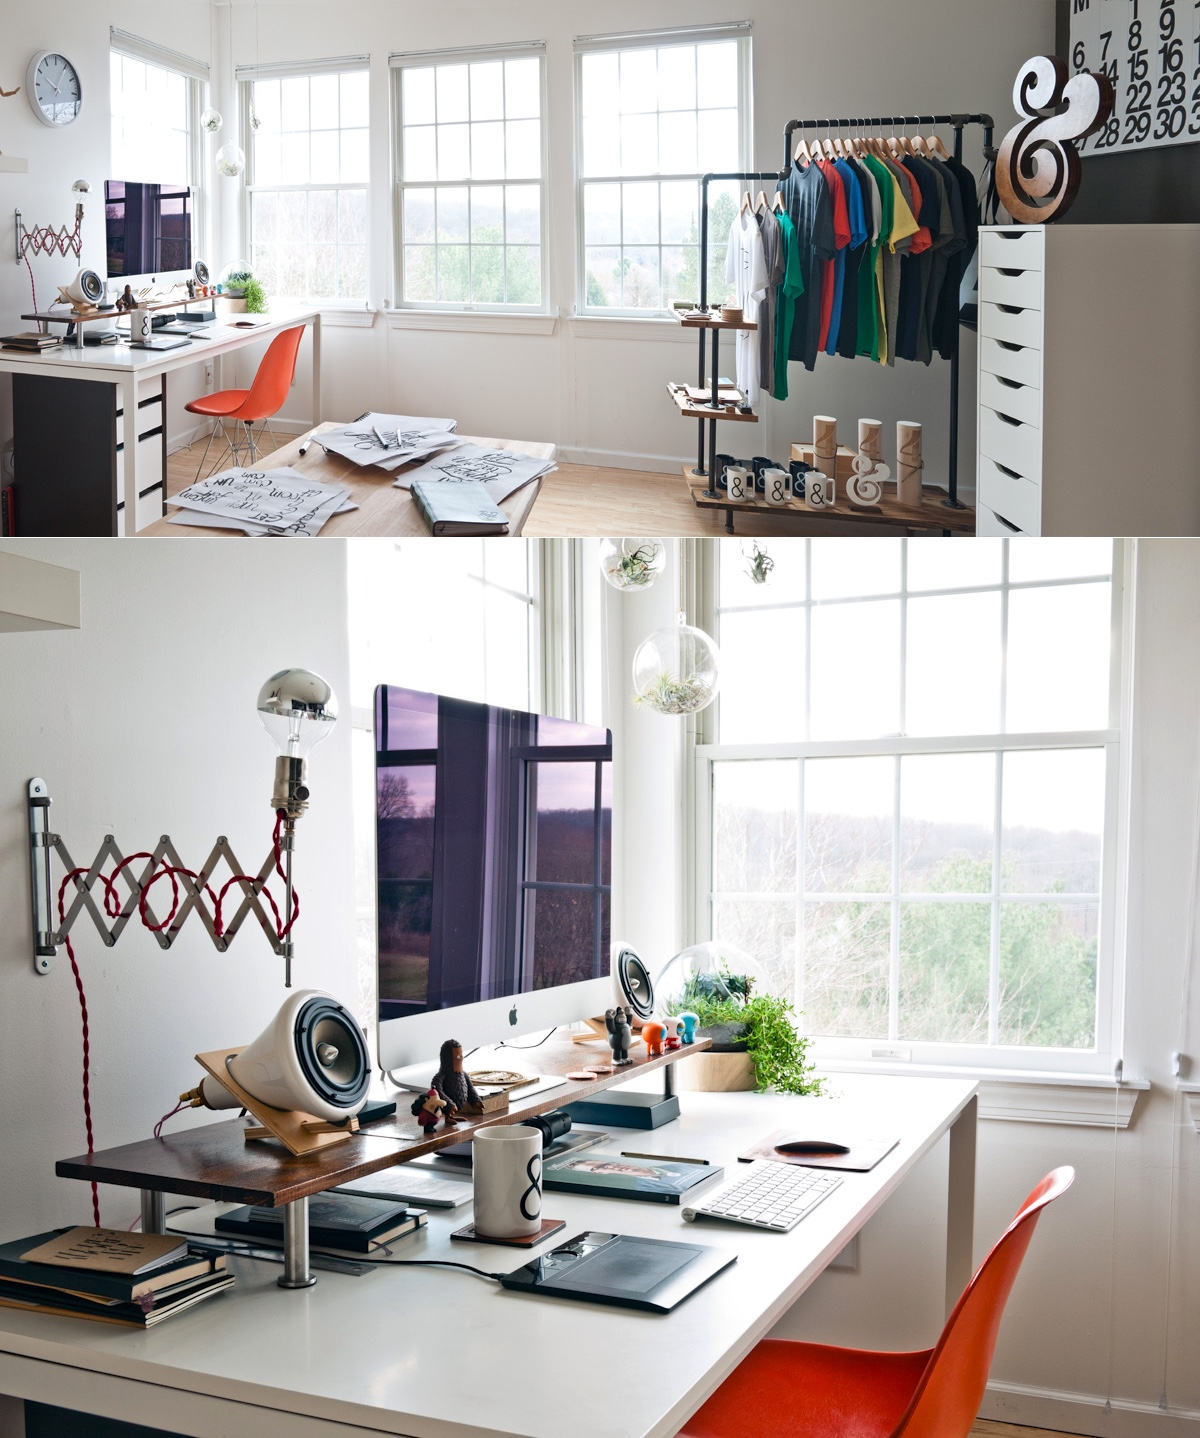 Home Office Space Ideas: Creative And Inspirational Workspaces